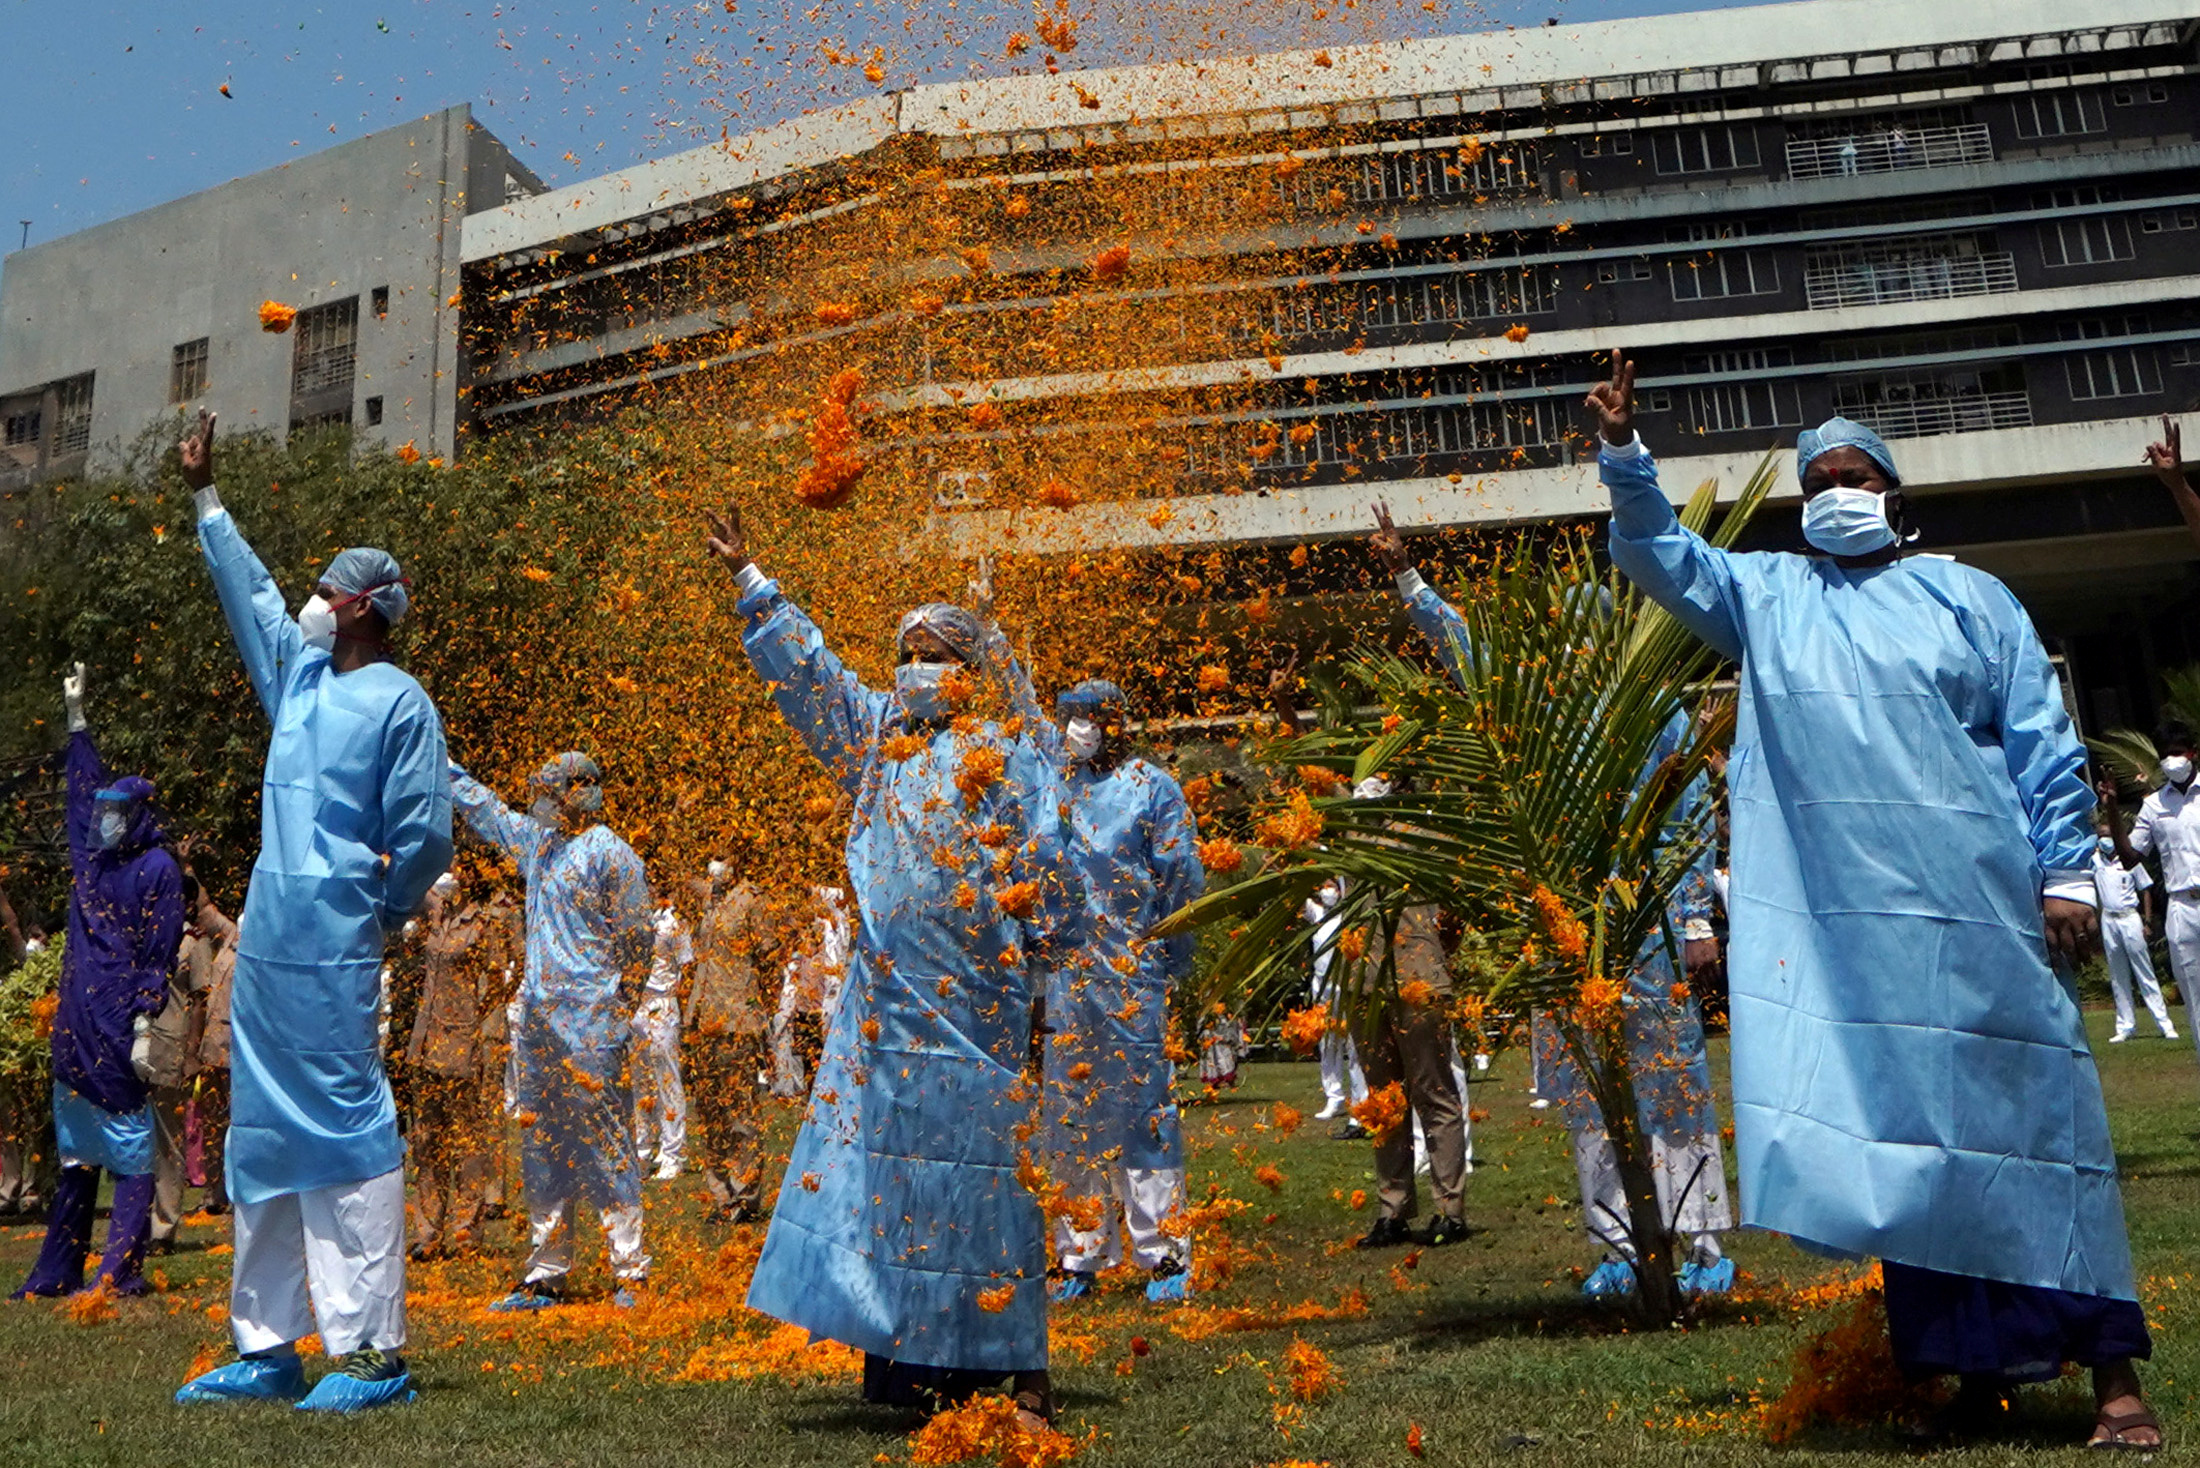 The staff of INHS Asvini hospital are showered with flower petals by Indian Navy's Chetak helicopter as part of an event to show gratitude towards the frontline warriors fighting the coronavirus disease (COVID-19) outbreak, in Mumbai, India, May 3, 2020. REUTERS/Hemanshi Kamani